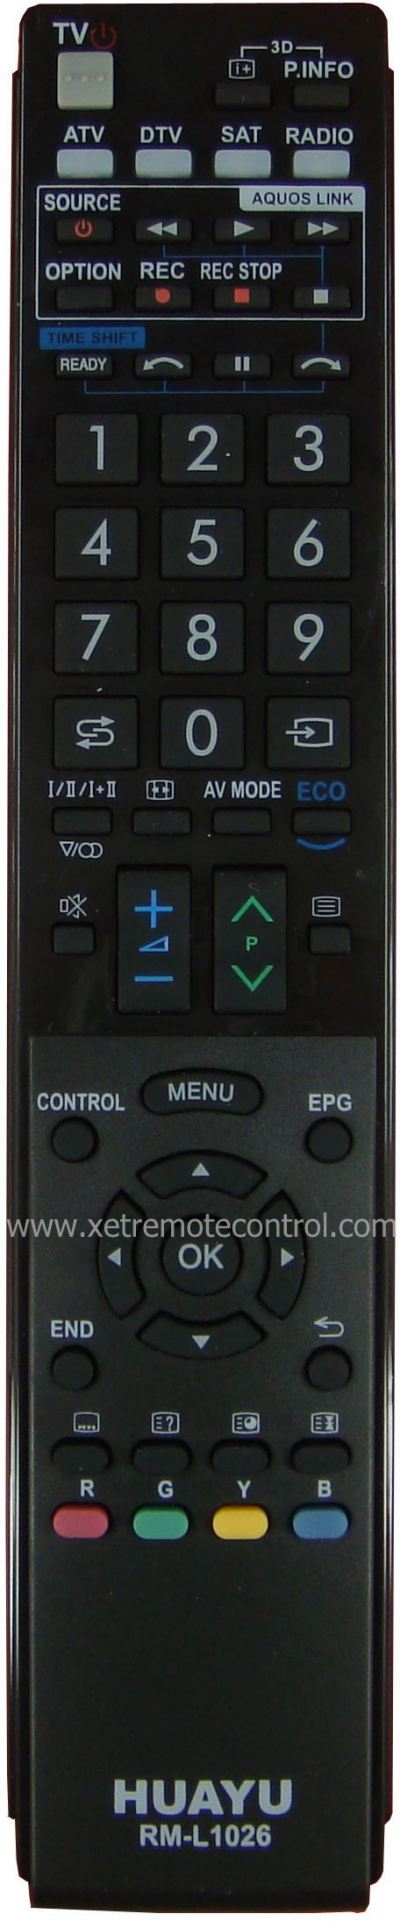 RM-L1026 SHARP LCD/LED TV REMOTE CONTROL